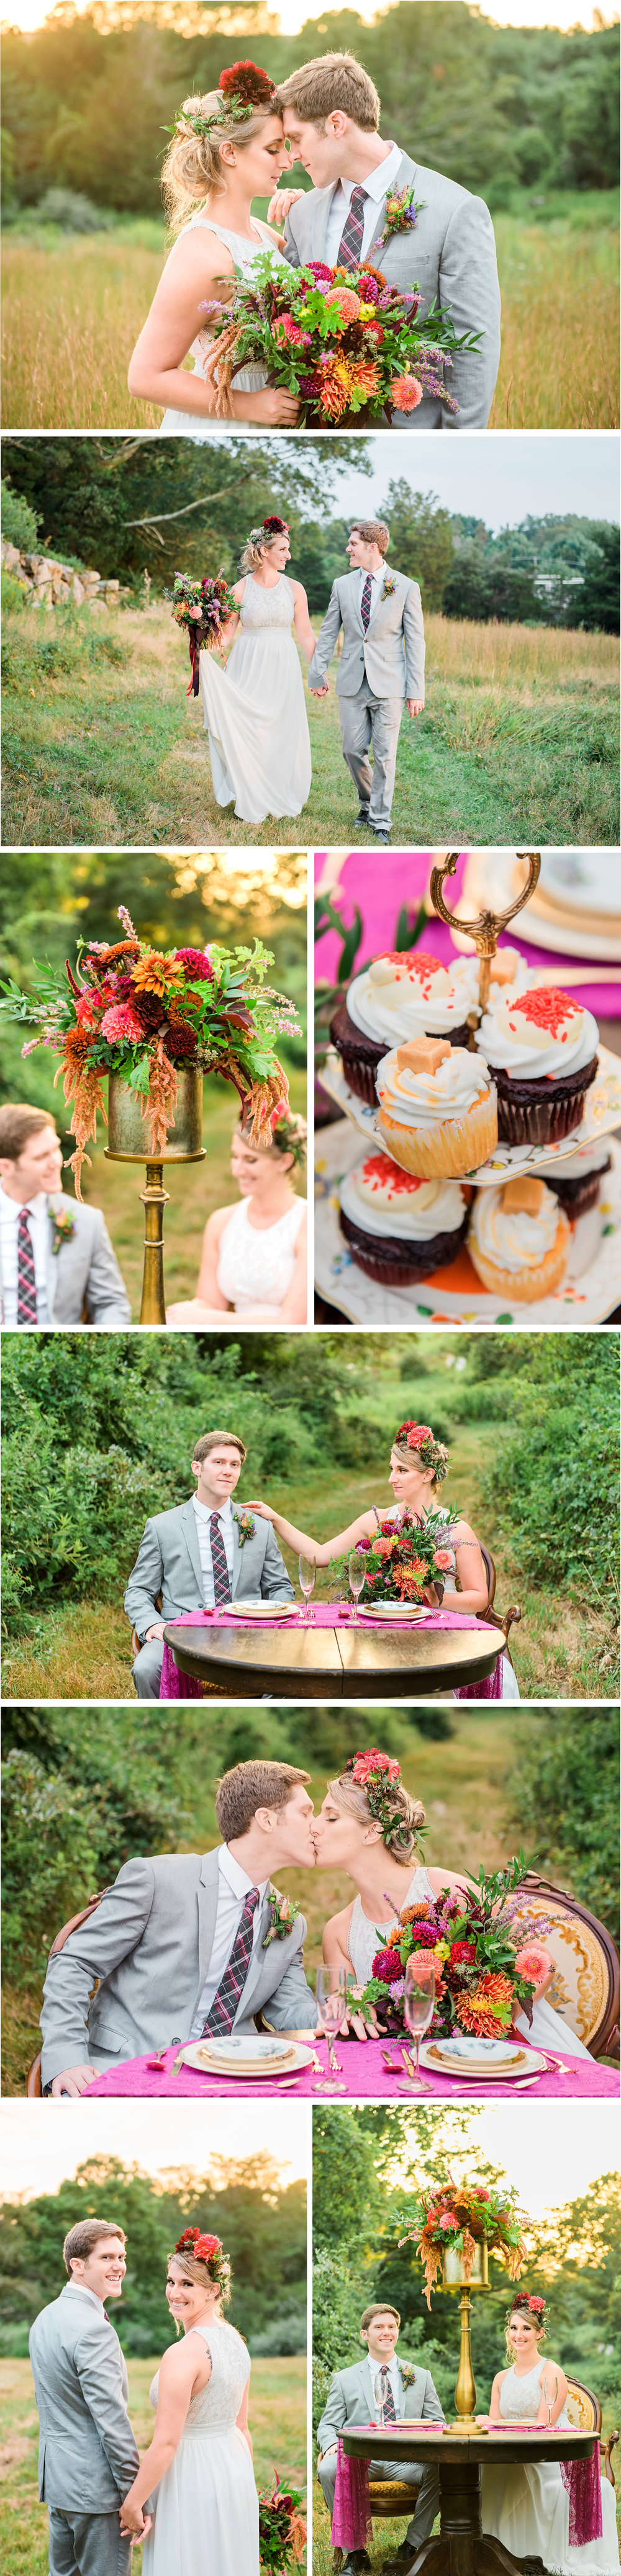 Connecticut Boho Bridal Wedding S and P.jpg